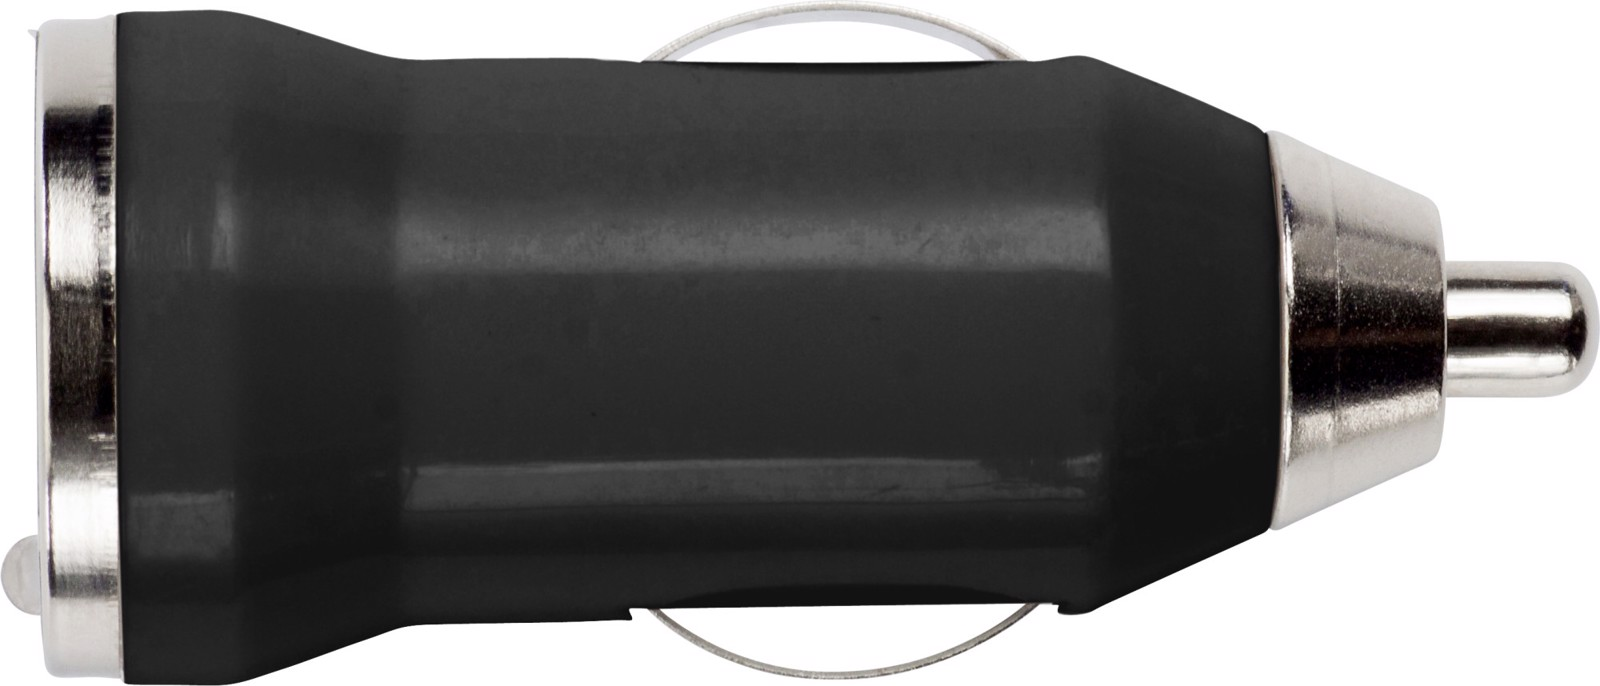 ABS car power adapter - Black